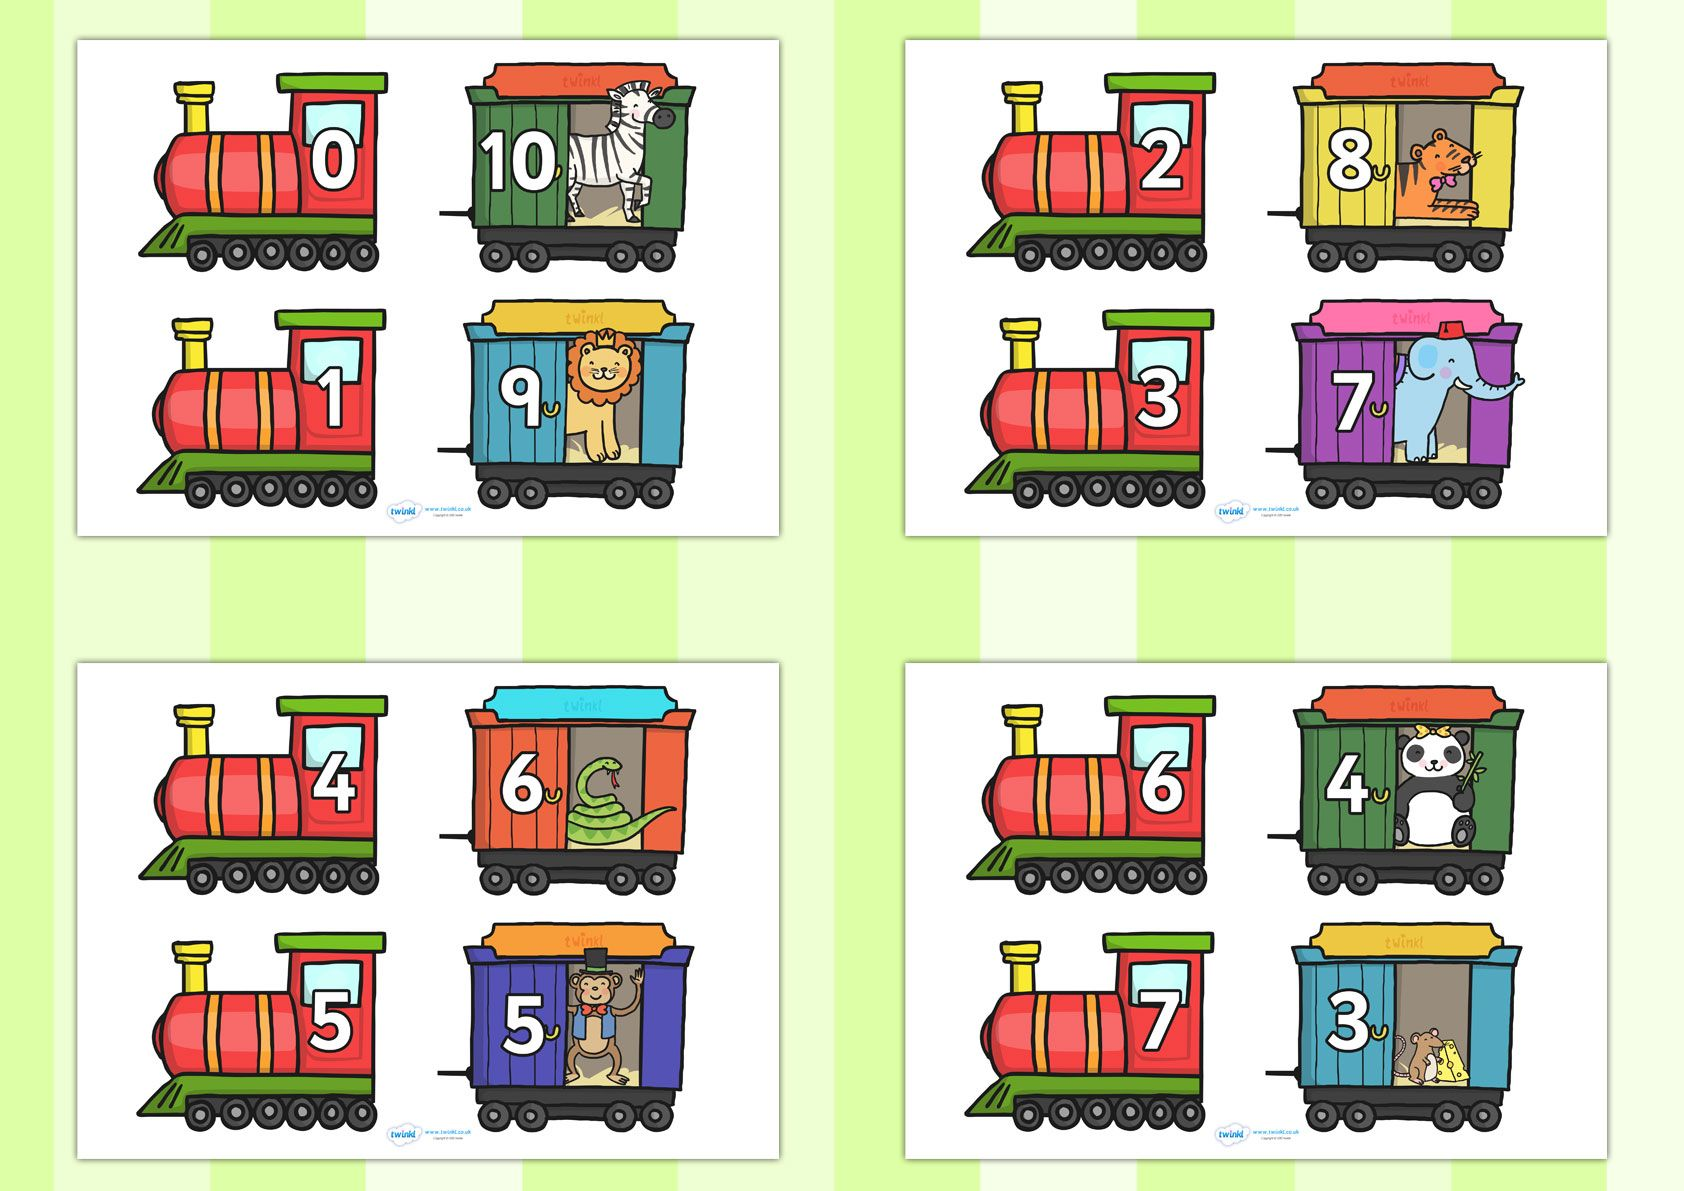 Twinkl Resources Gt Gt Number Bonds To 10 On Trains And Carriages Gt Gt Classroom Printables For Pre